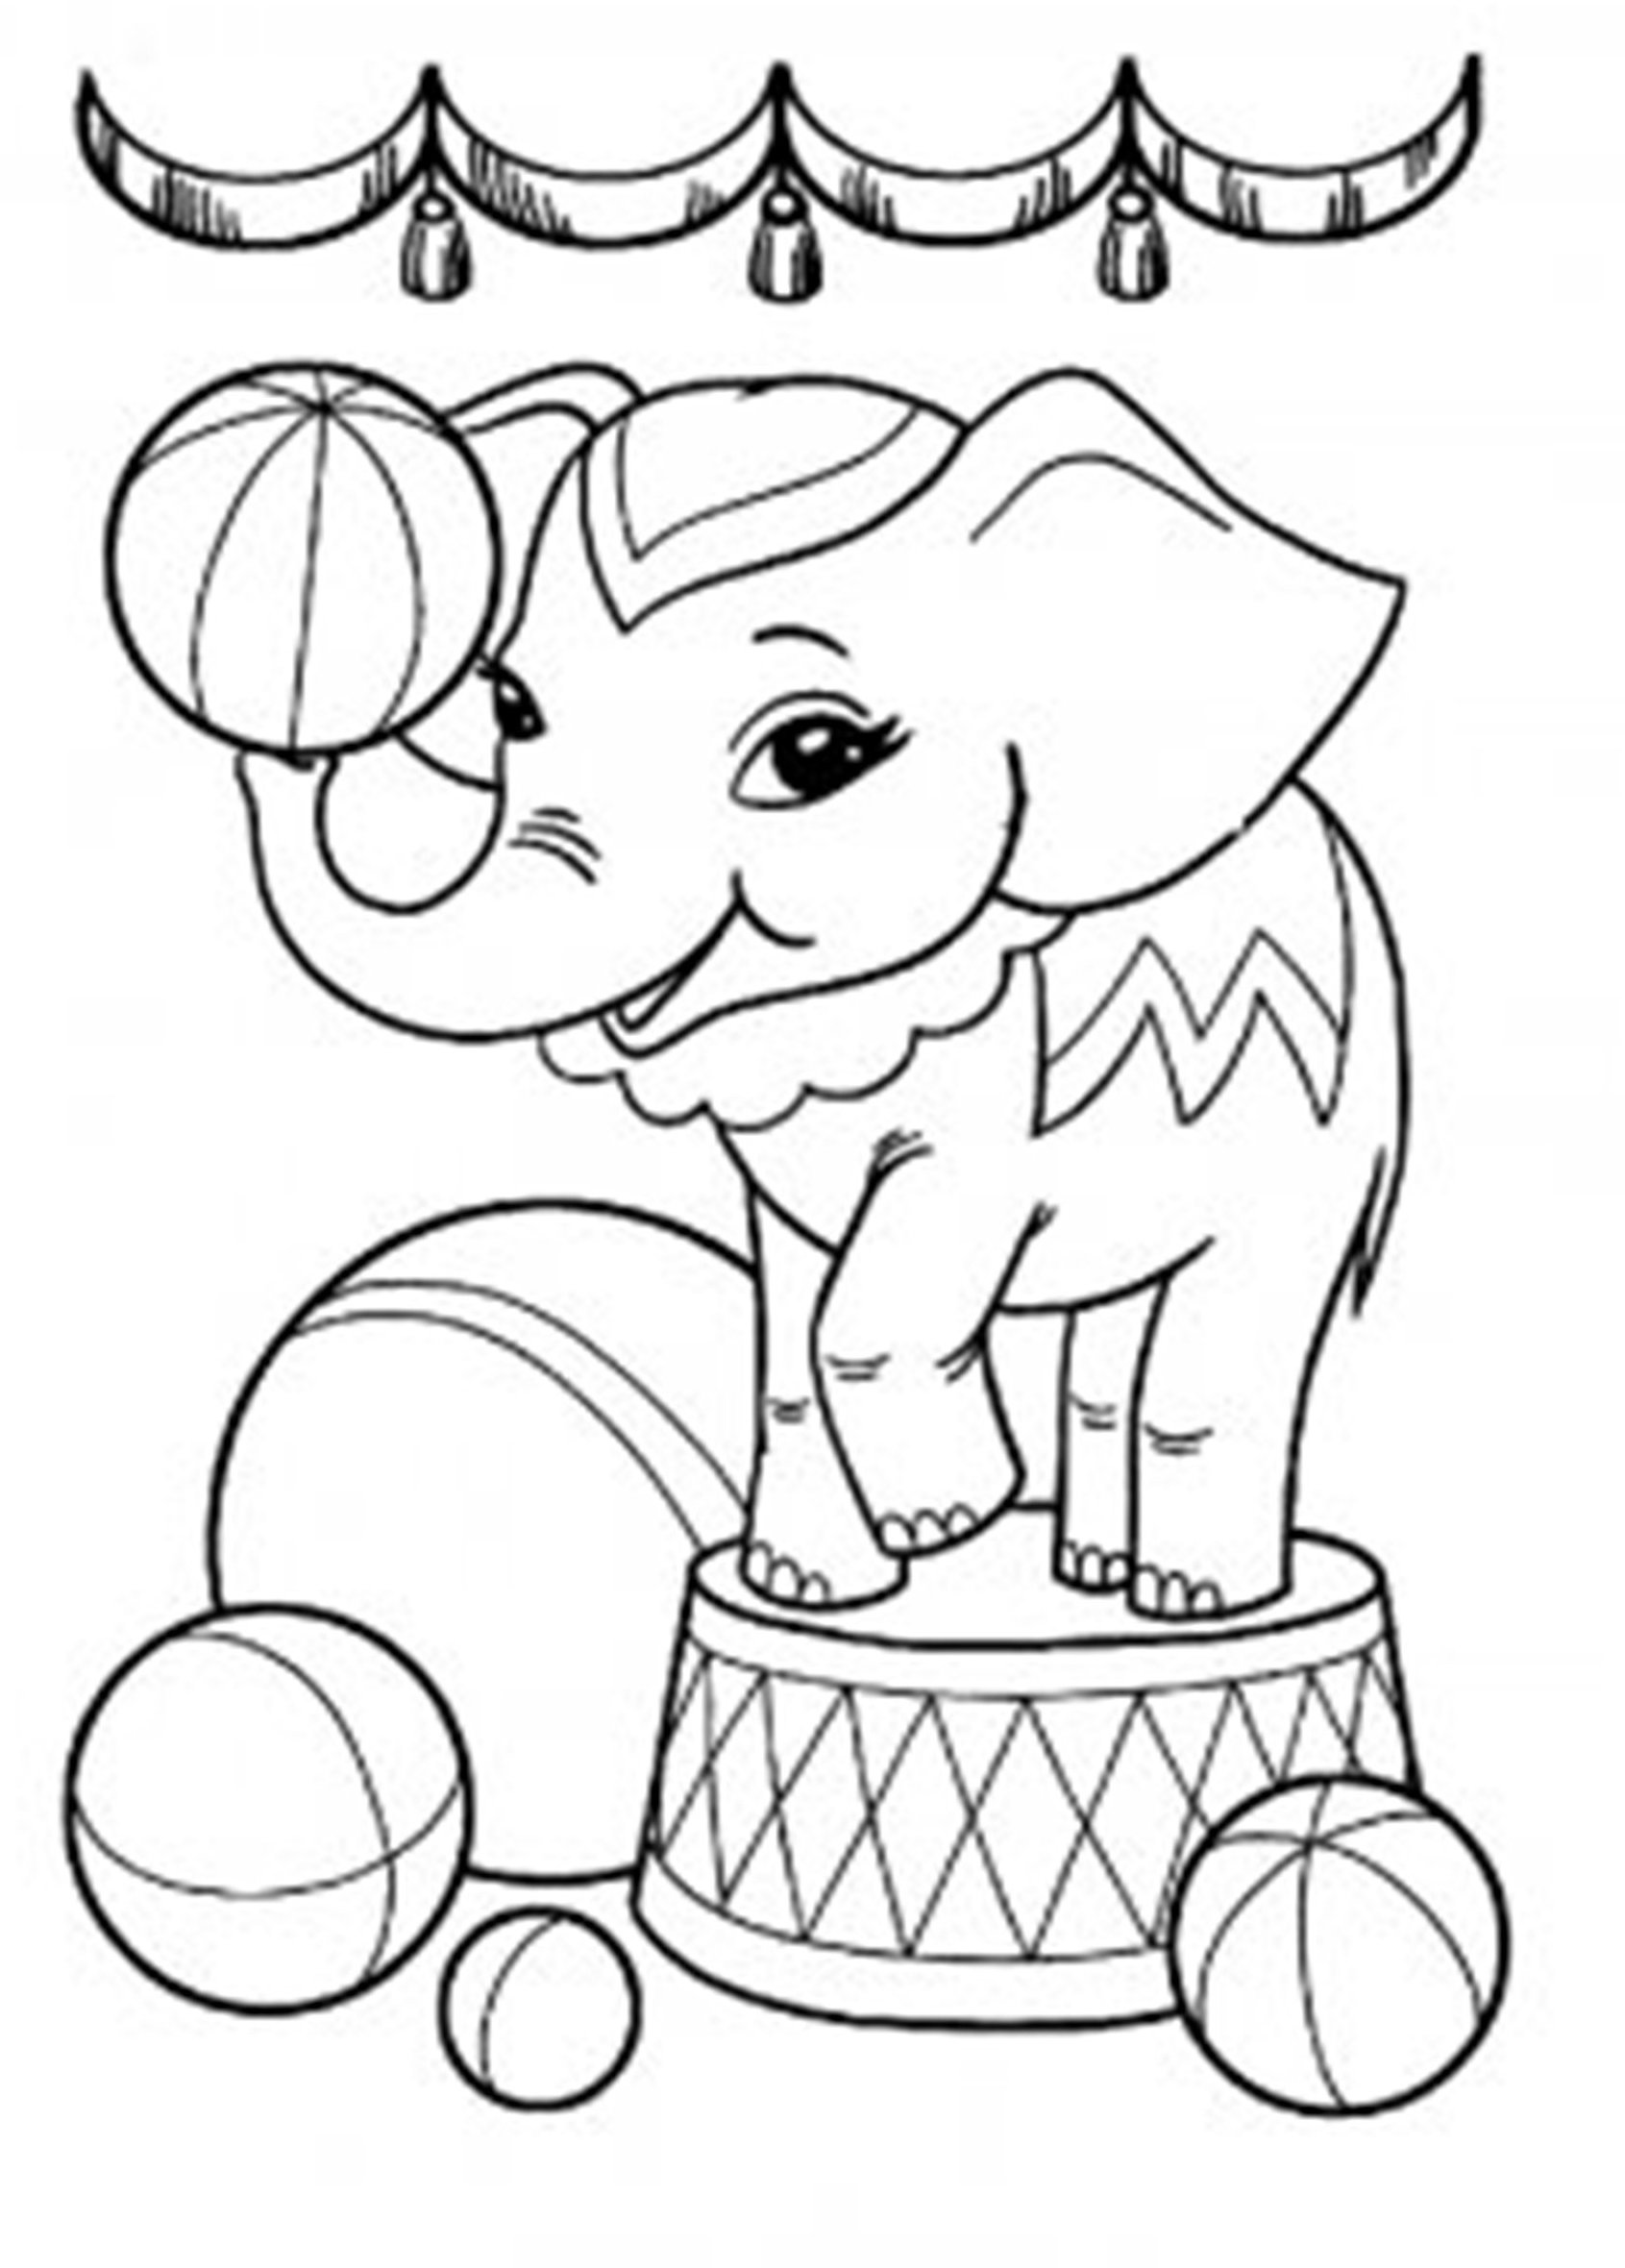 coloring sheets elephant elephant coloring pages for kids printable for free sheets coloring elephant